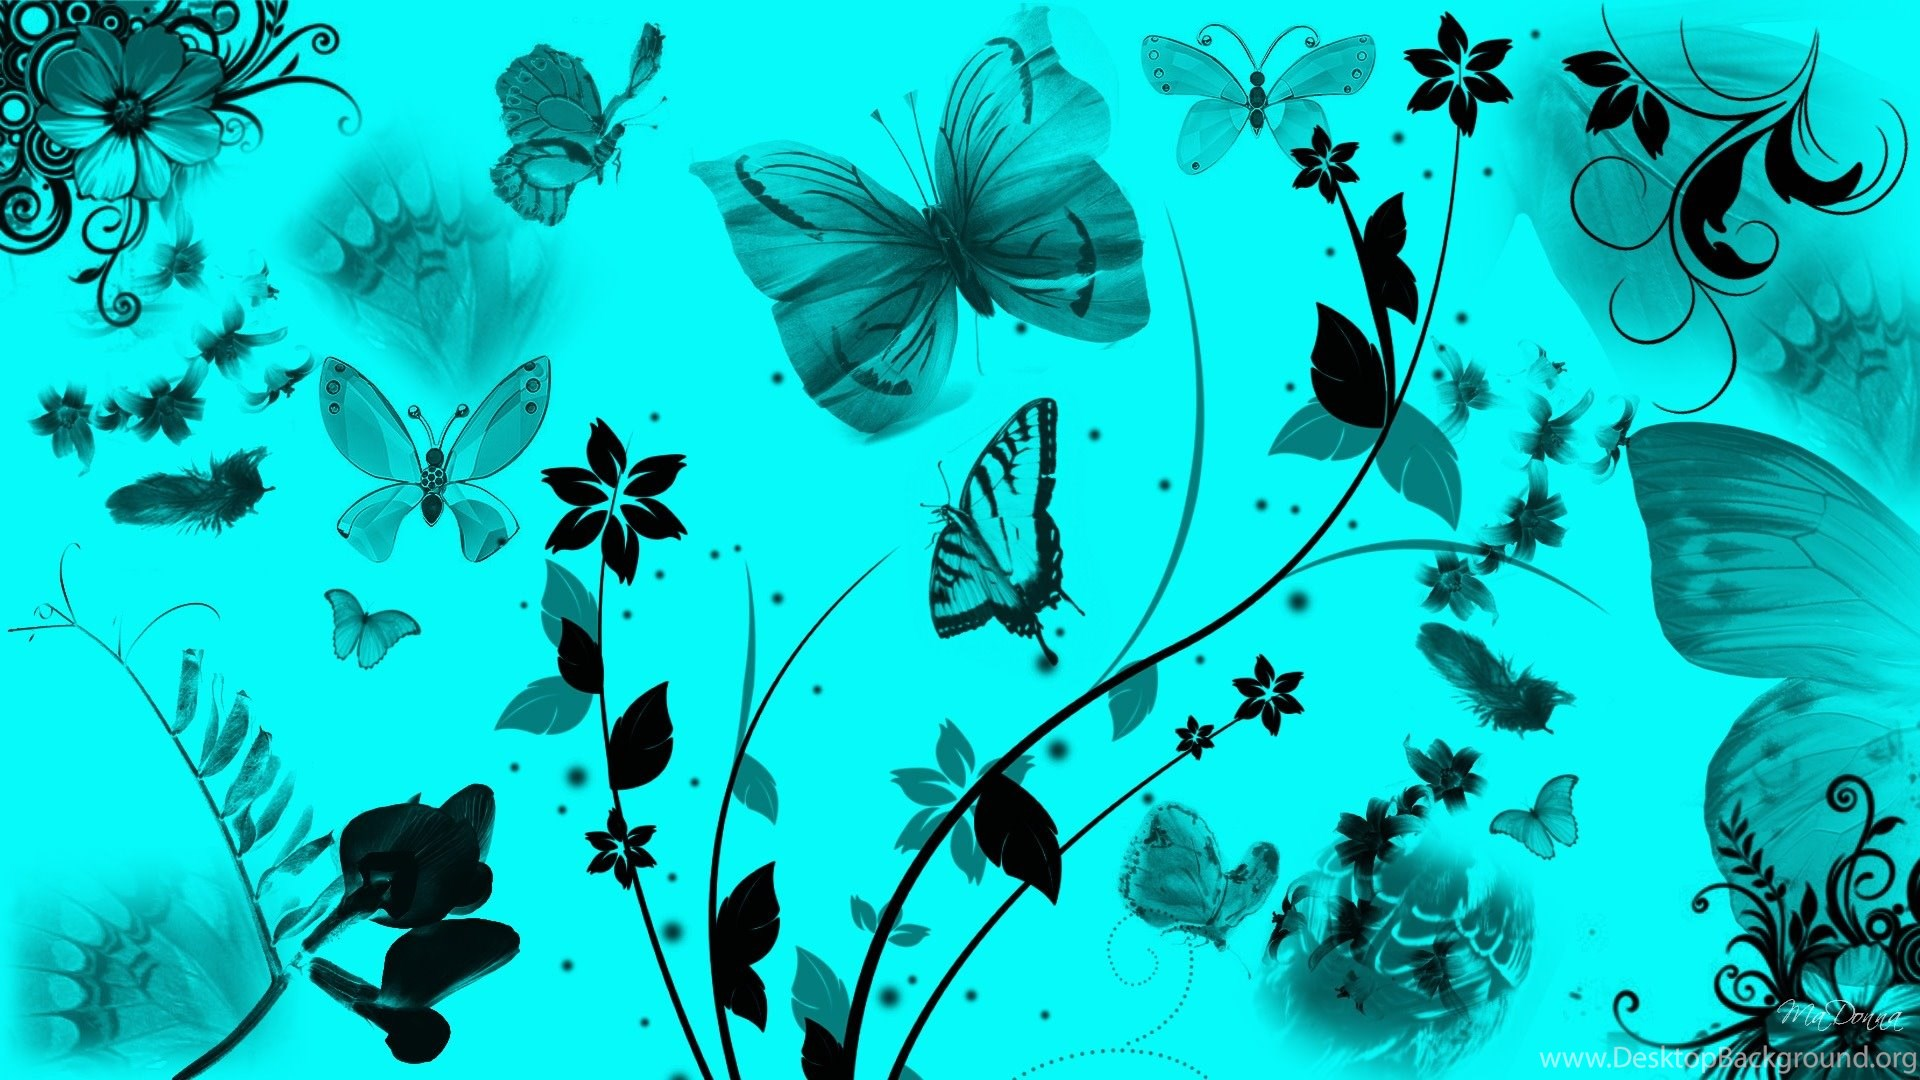 Teal Butterfly Wallpapers All Wallpapers New Desktop ...